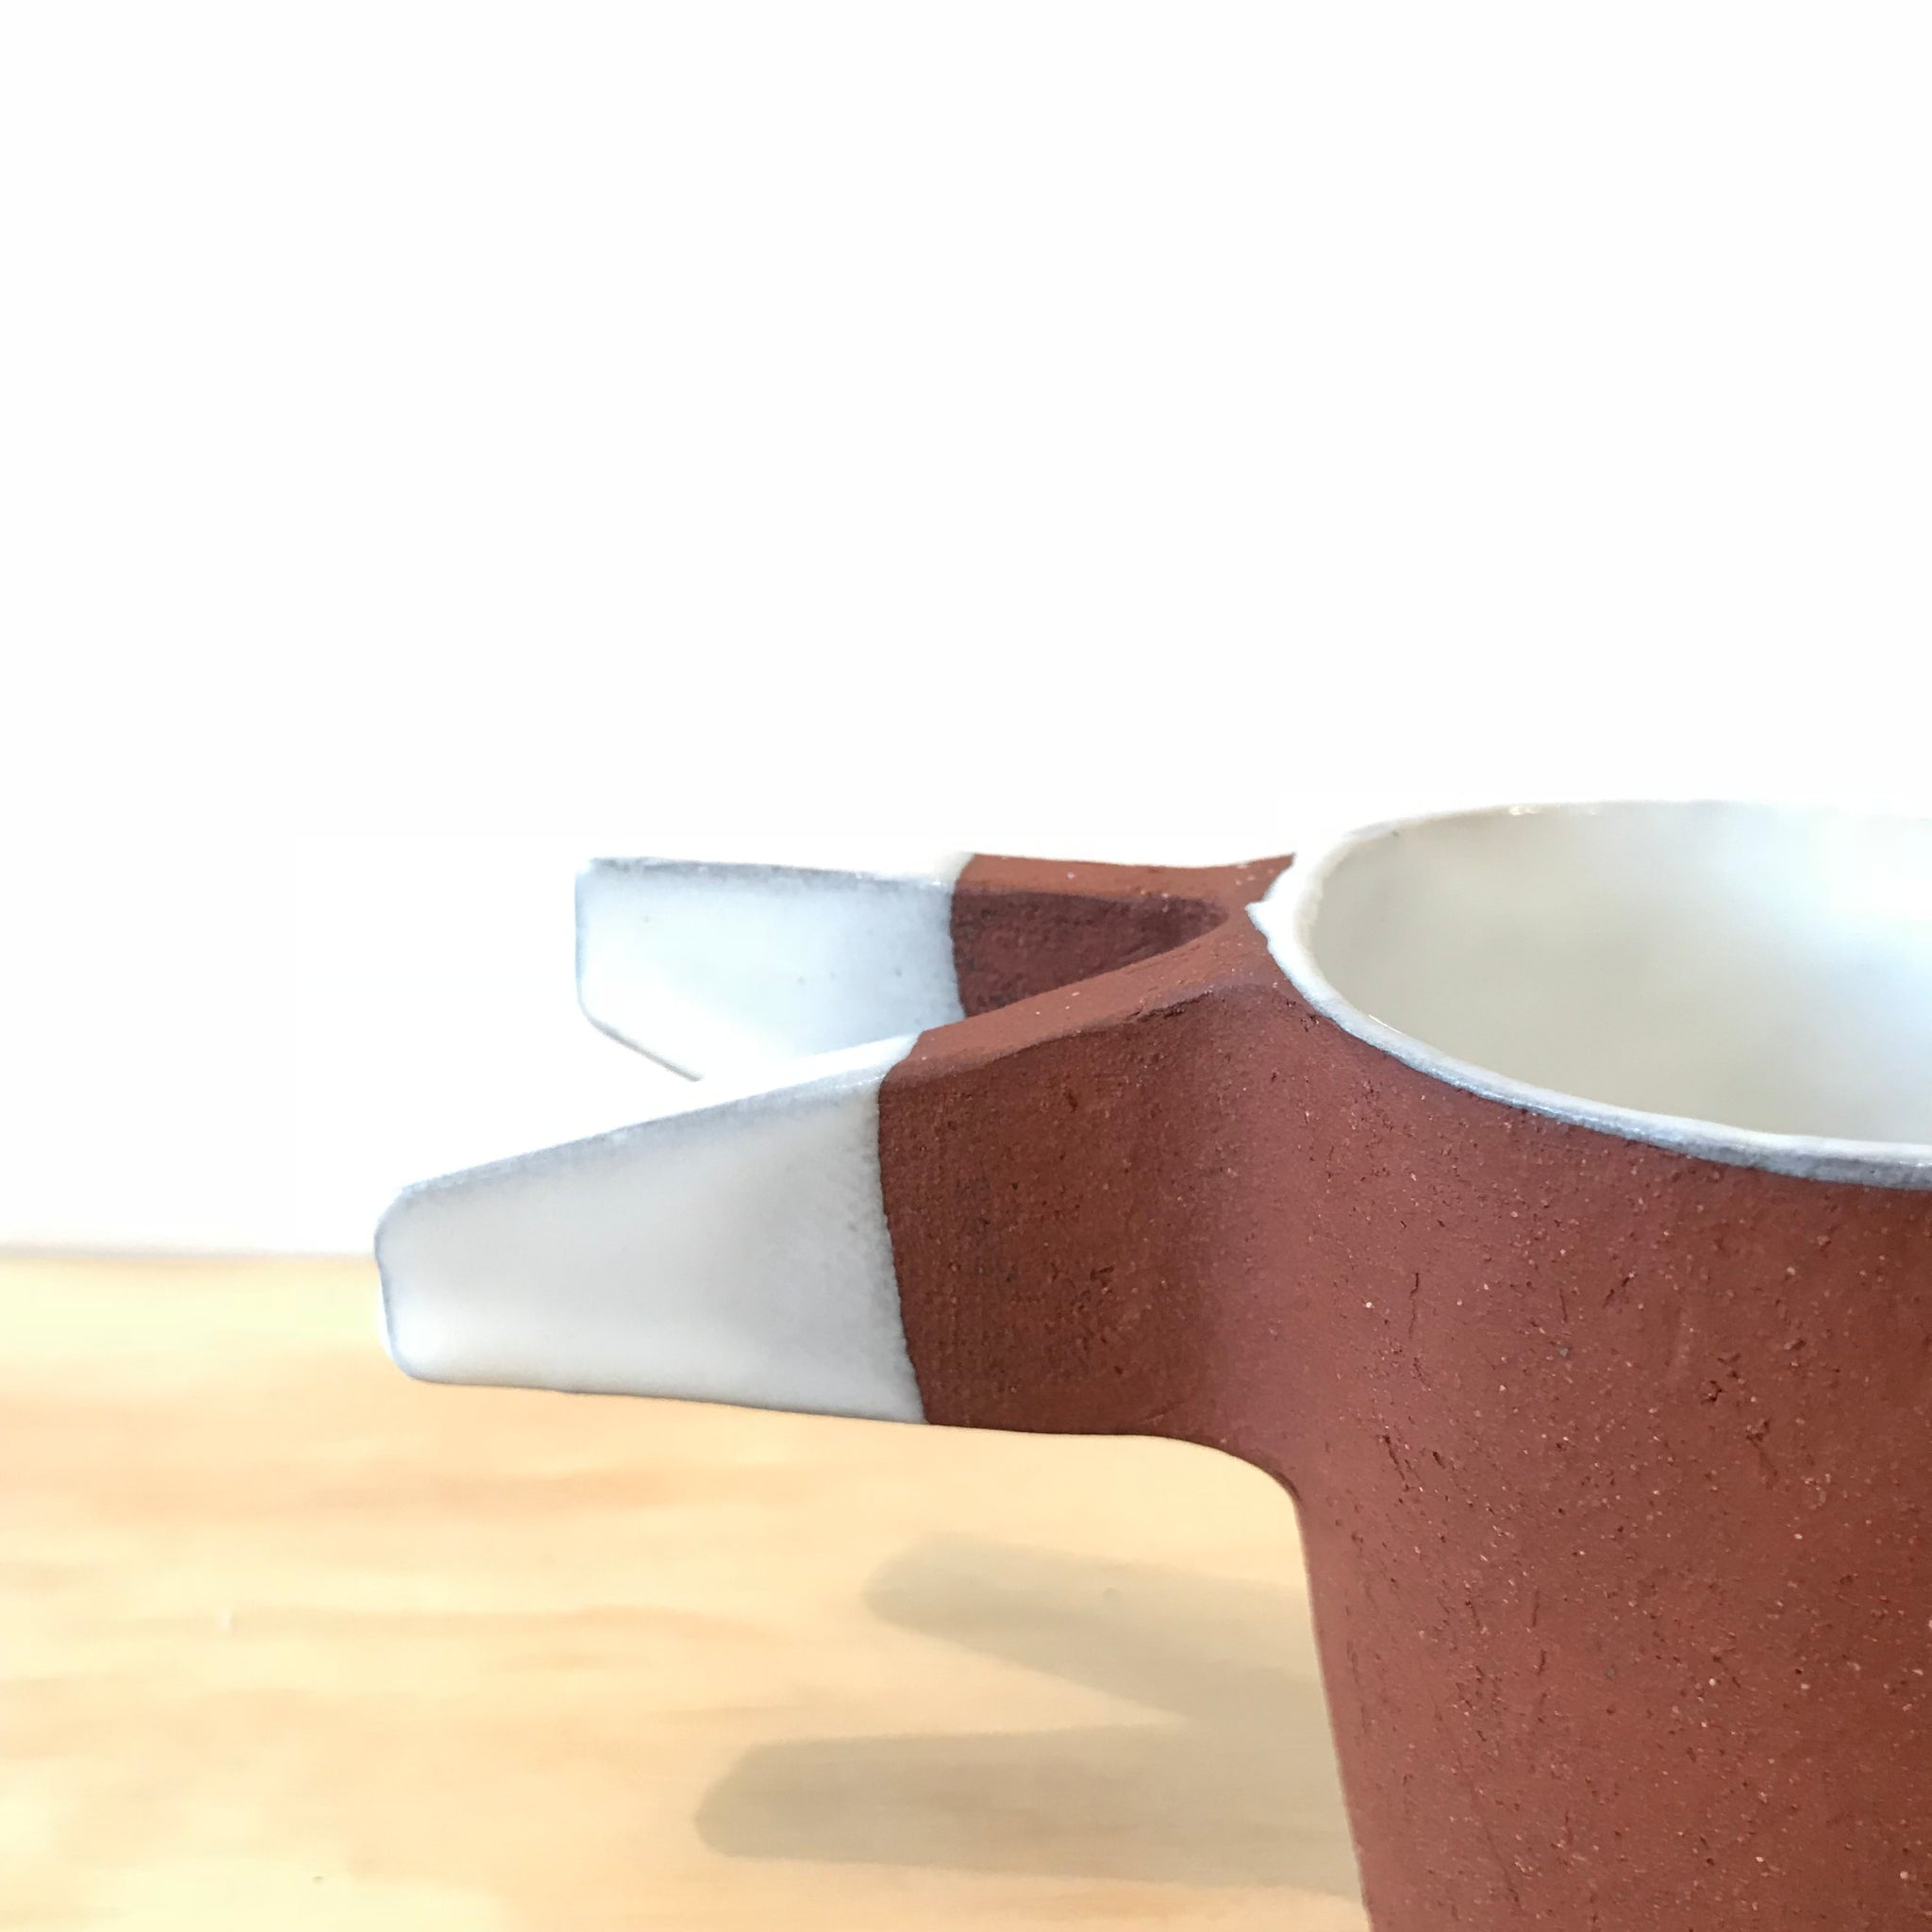 Aquatic Mug B by Carnavale Clay - Upstate MN